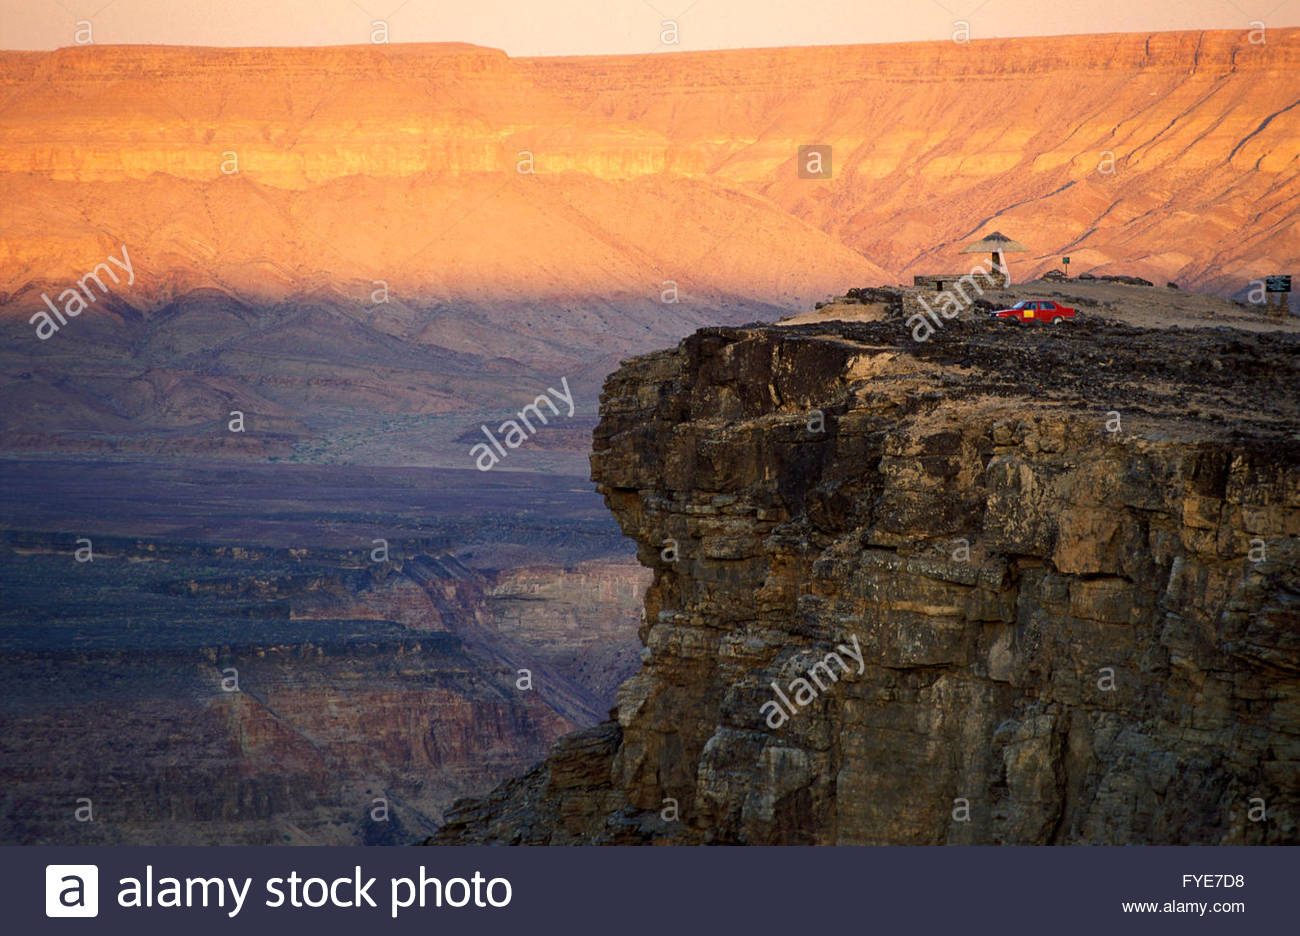 Fish river canyon Namibia. - Stock Image